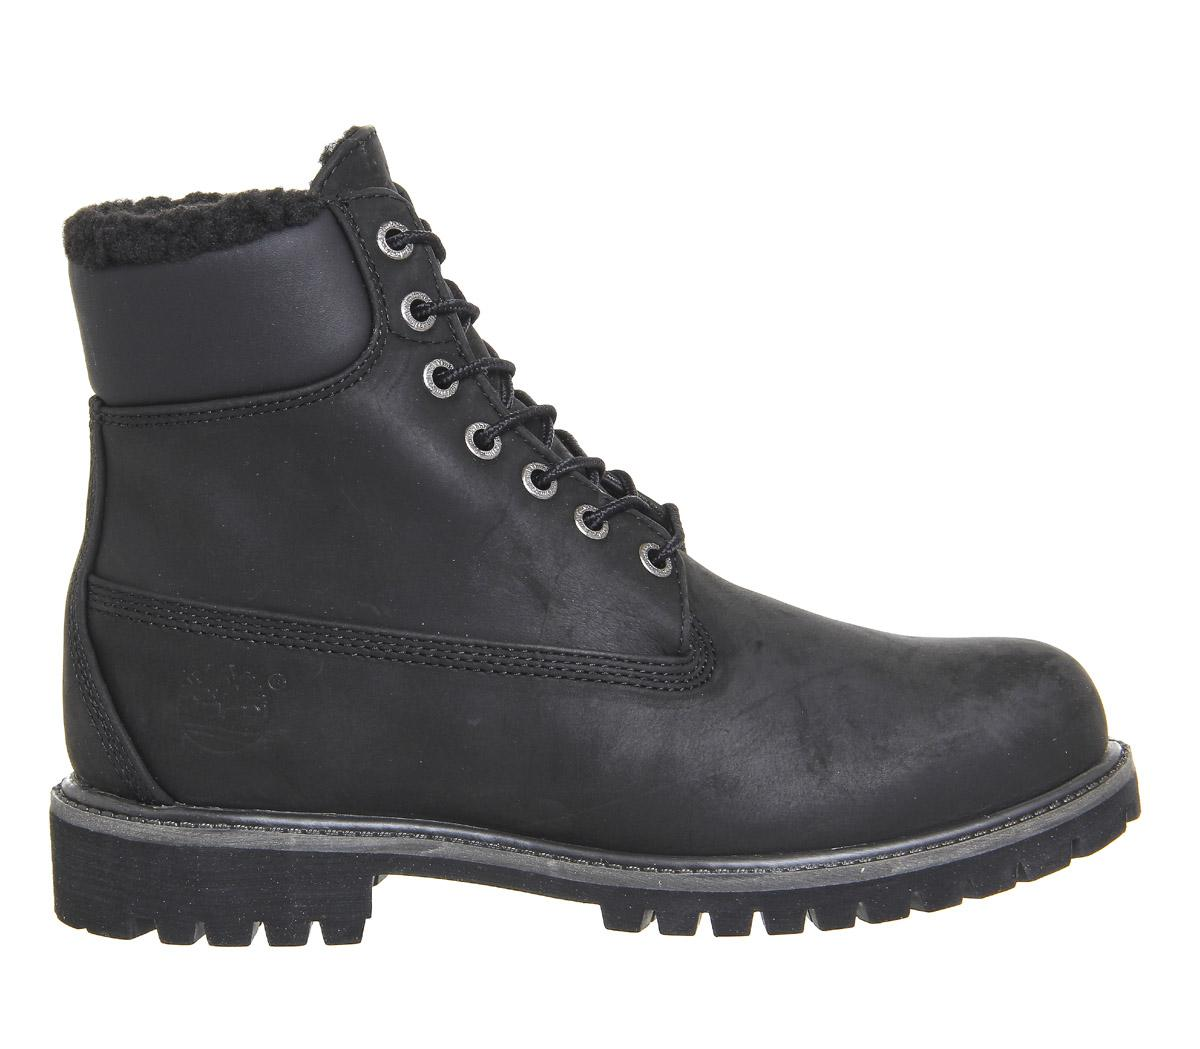 lyst timberland premium 6 inch warm lined boots in black. Black Bedroom Furniture Sets. Home Design Ideas